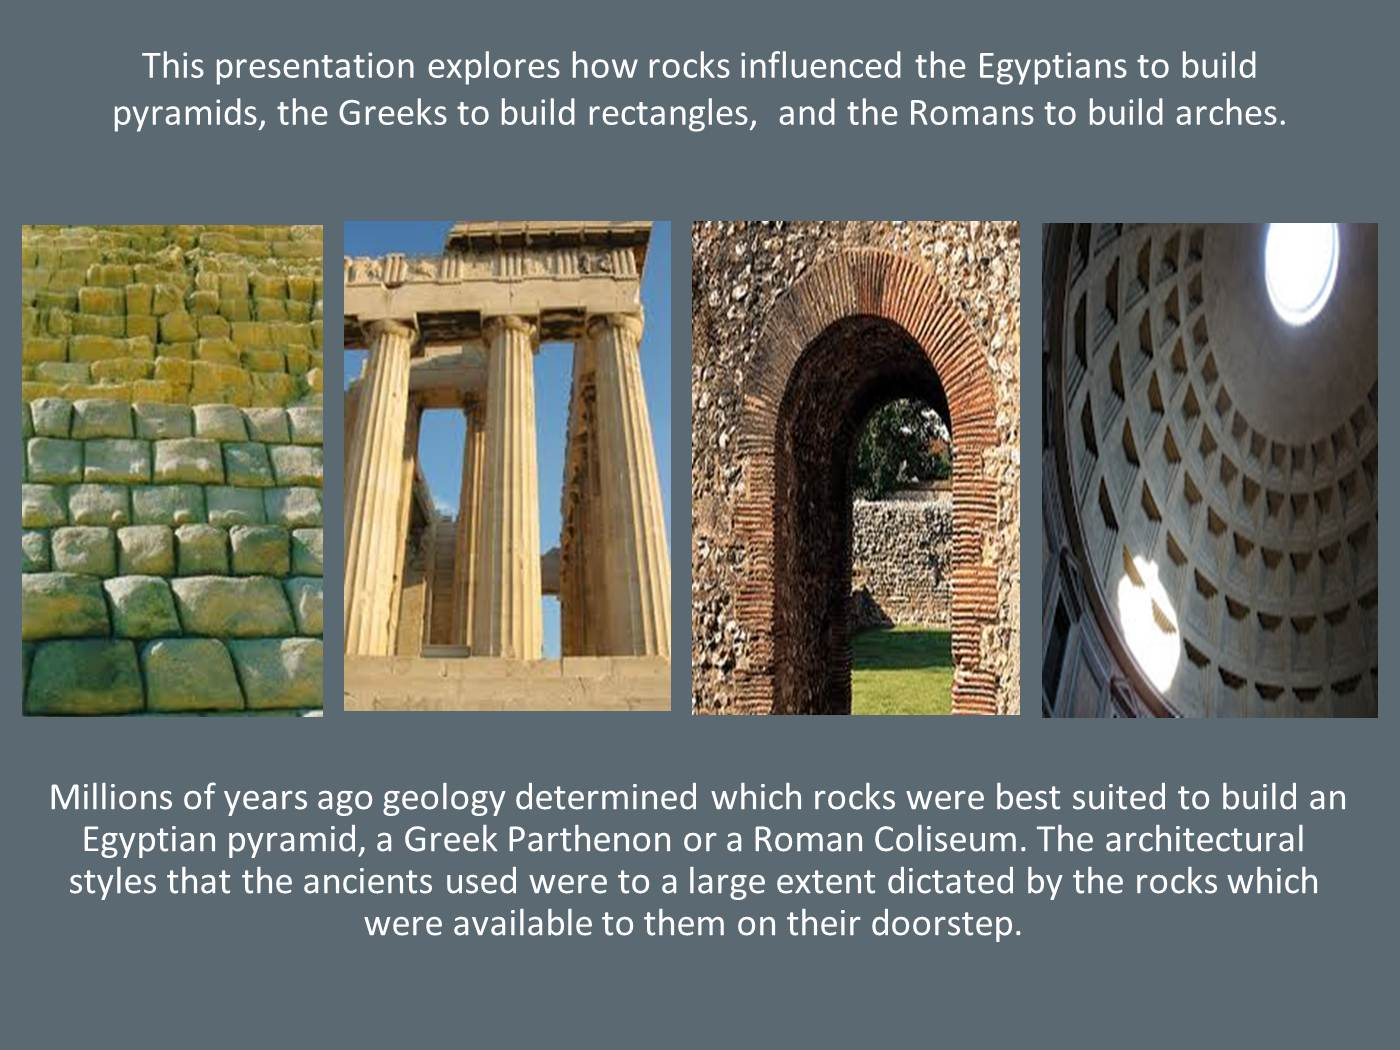 How geology influenced the architecture of ancient egypt greece and how geology influenced the architecture of ancient egypt greece and rome powerpoint presentation ppt toneelgroepblik Gallery